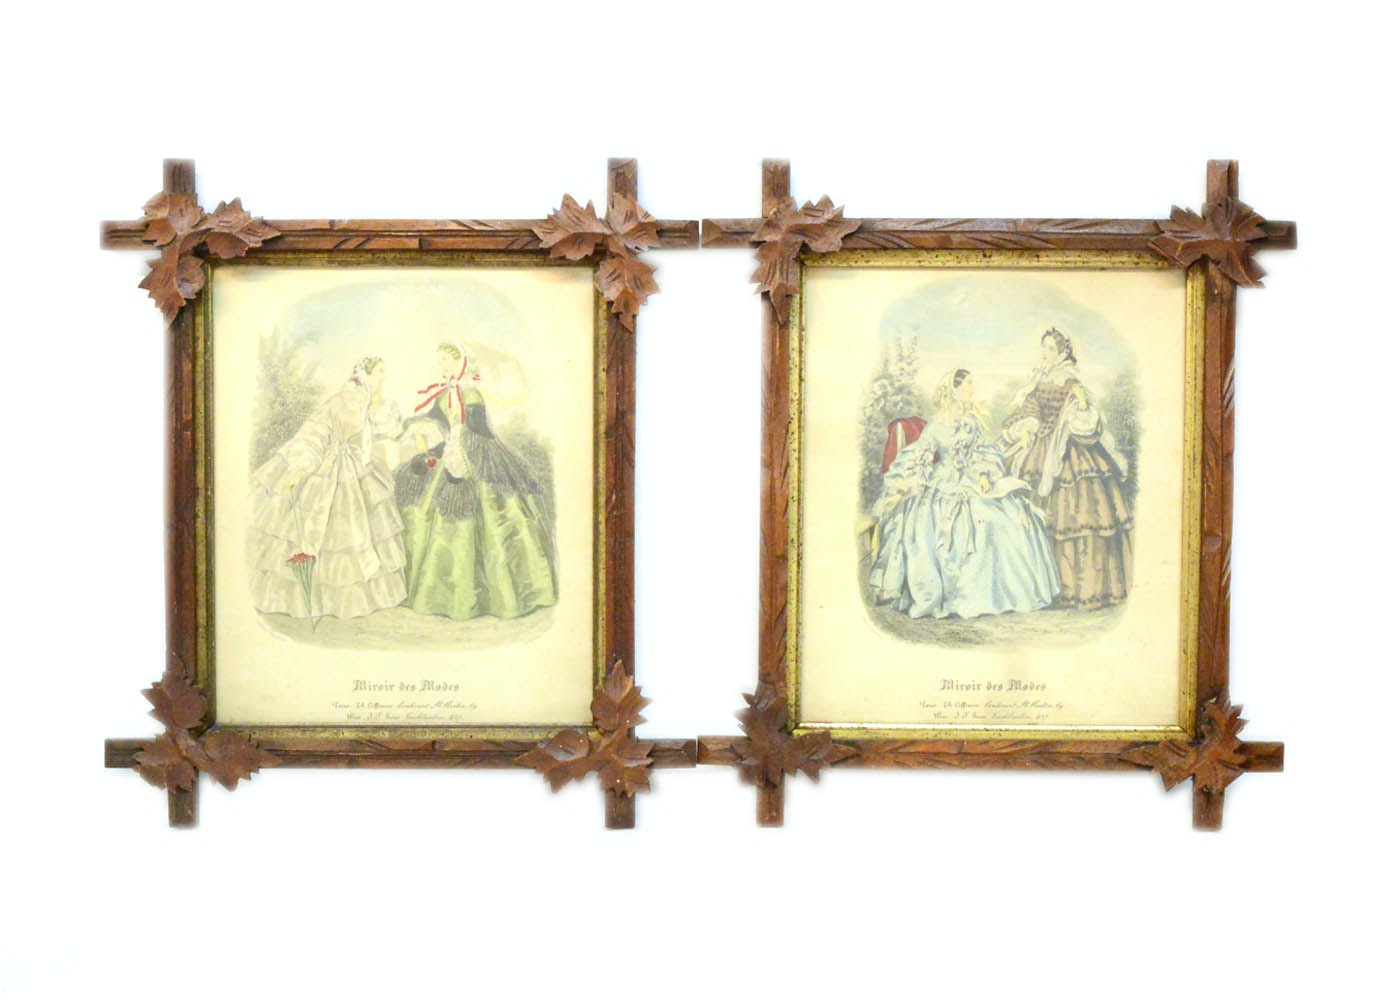 Pair of framed miroir des modes fashion plates ebth for Miroir des modes value